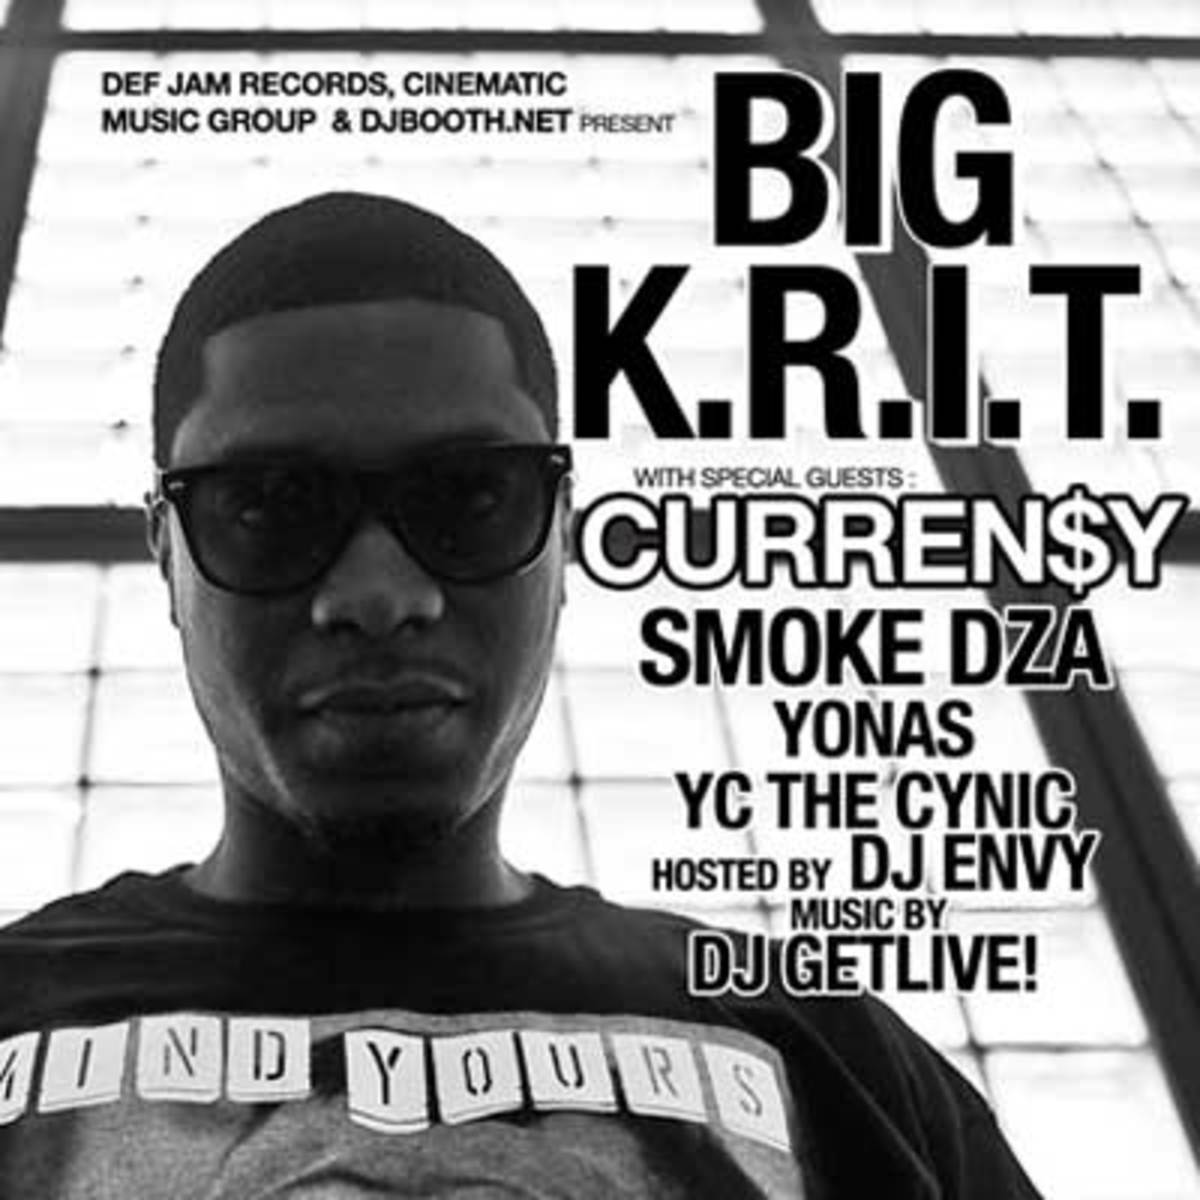 big-krit-showcase-small.jpg